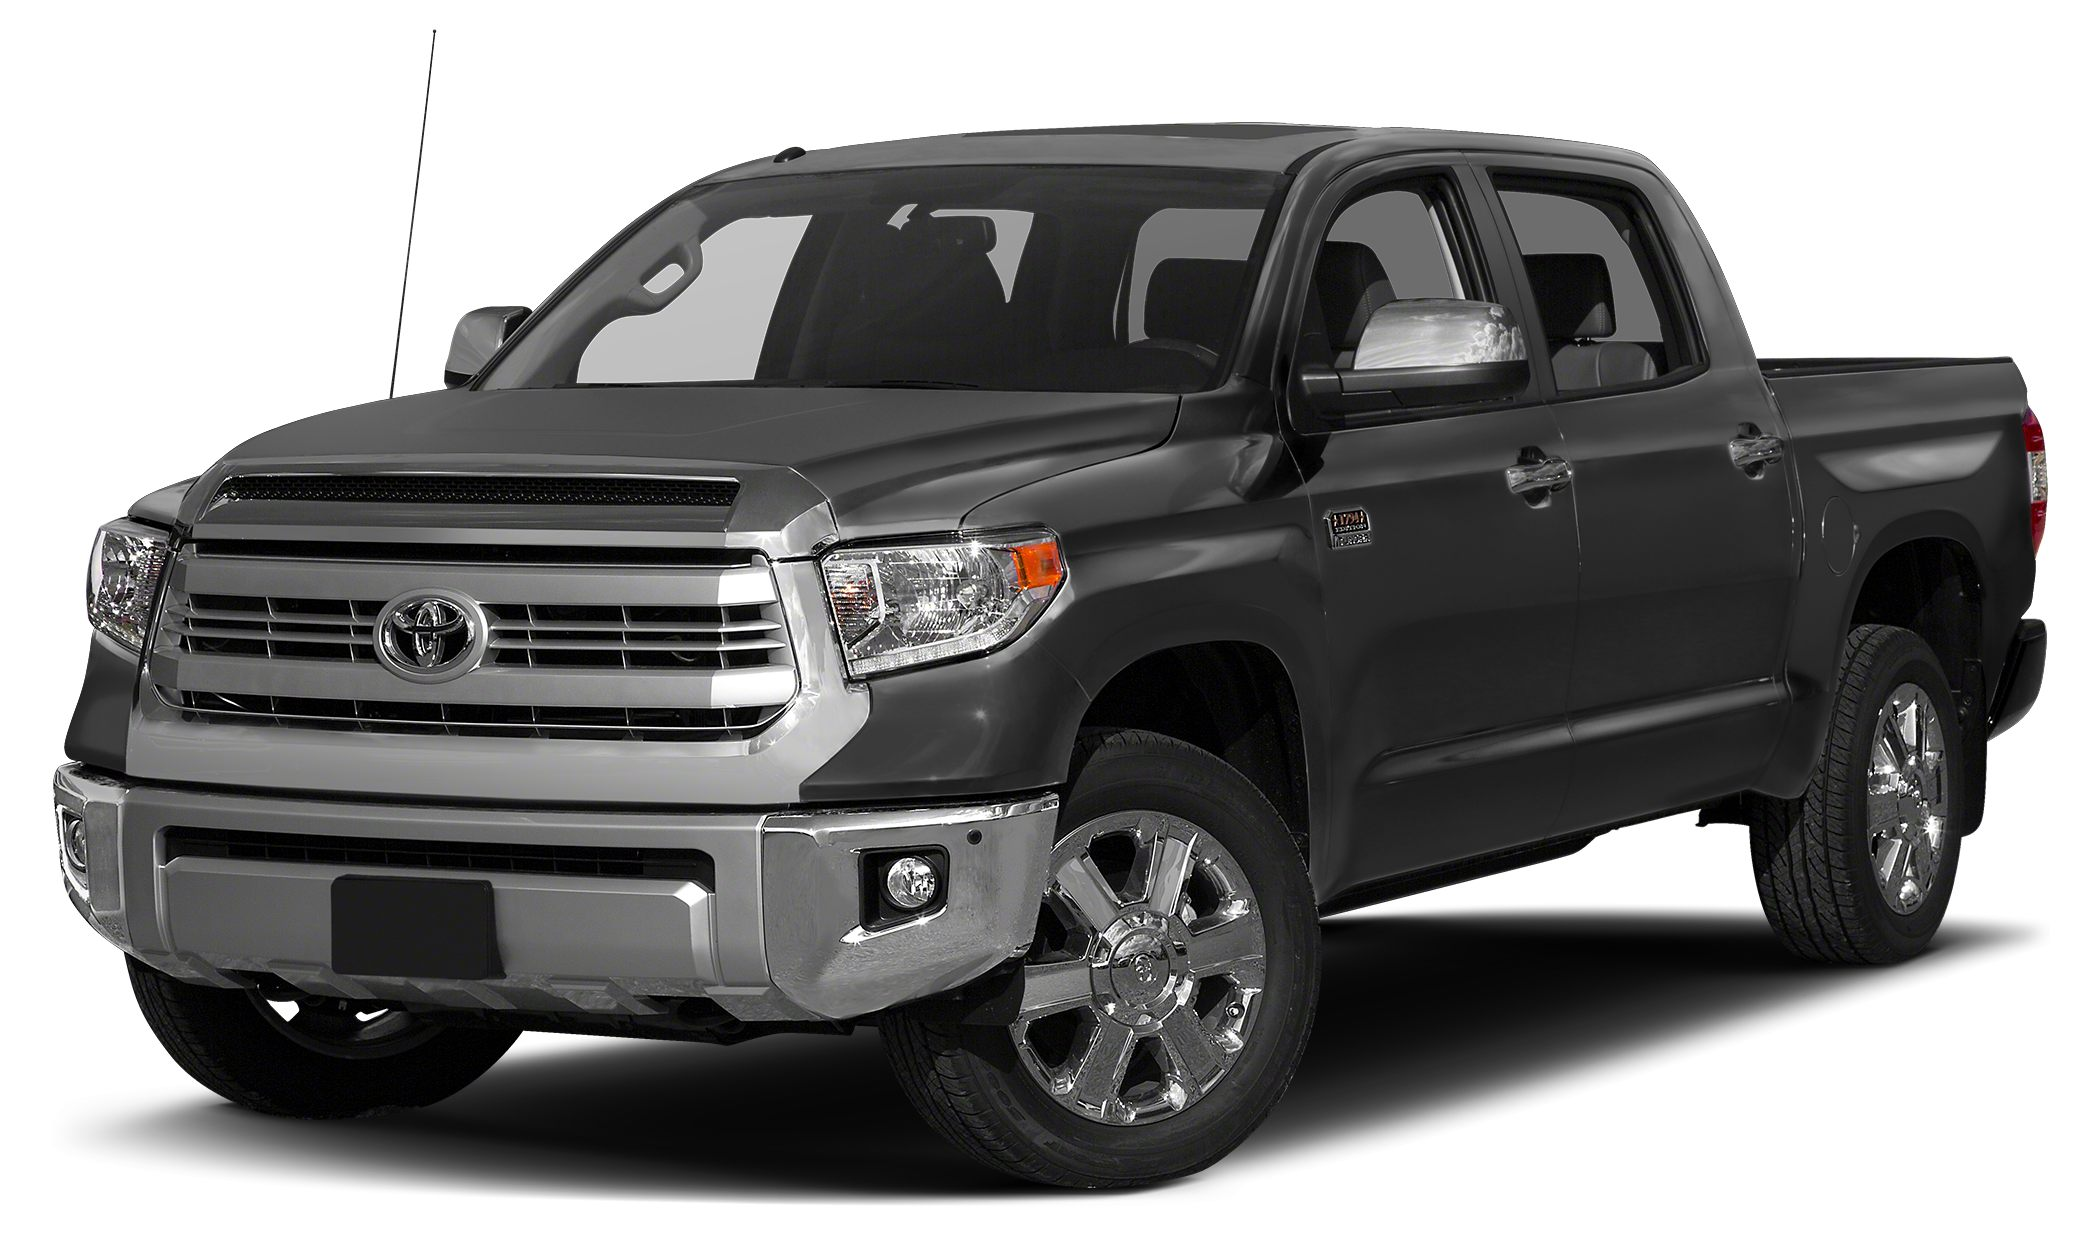 2014 Toyota Tundra 1794 New Arrival CarFax One Owner Navigation Back-up Camera Bluetooth Cool